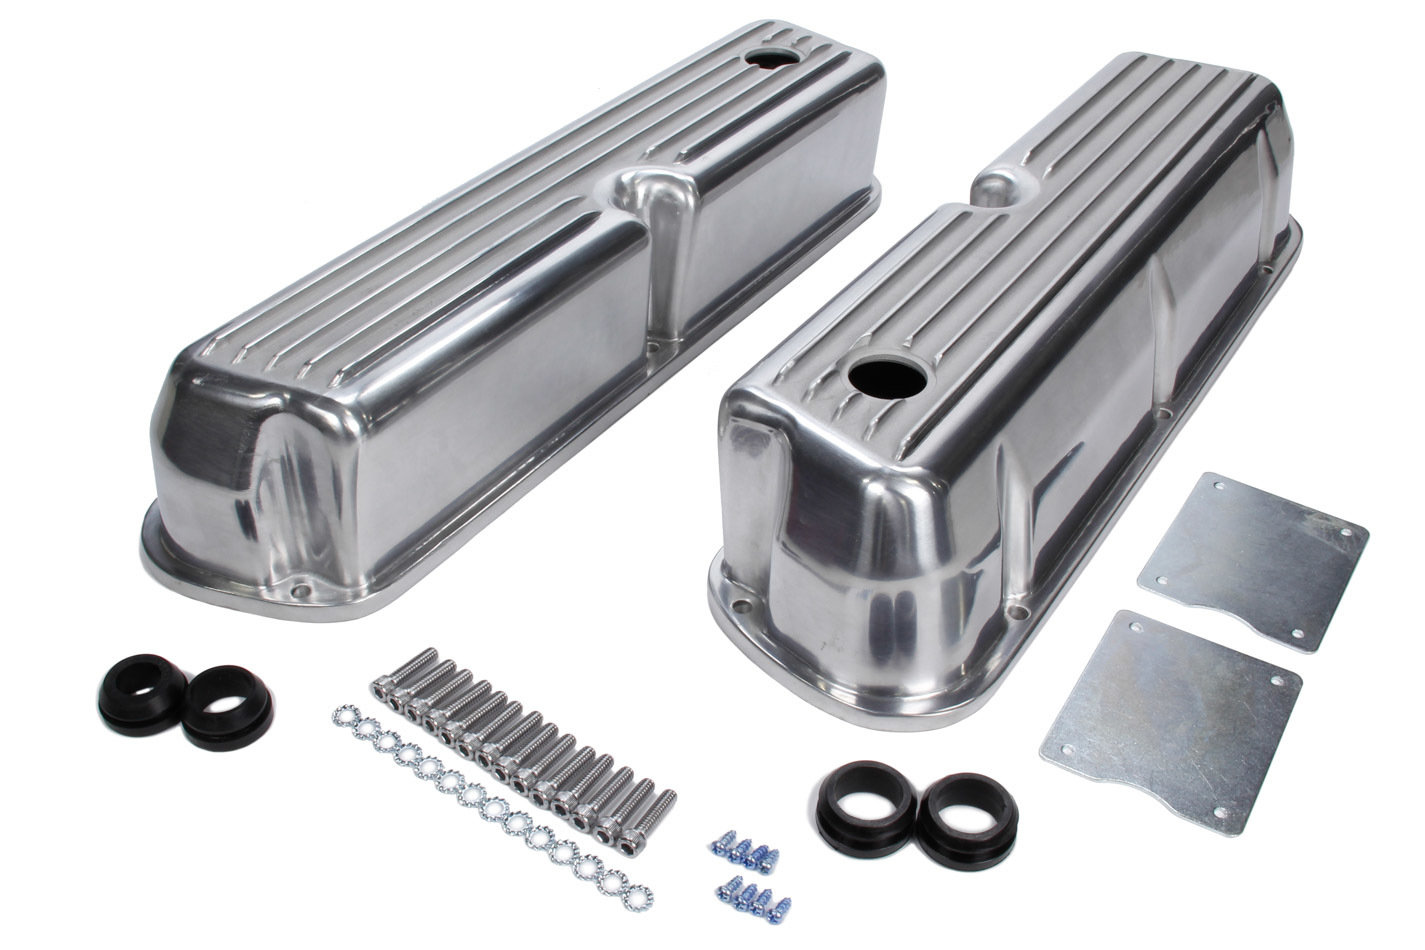 Racing Power Company R6175 Valve Cover, Tall, 3-7/16 in Height, Baffled, Breather Holes, Hardware Included, Top Finned, Aluminum, Polished, Small Block Ford, Pair